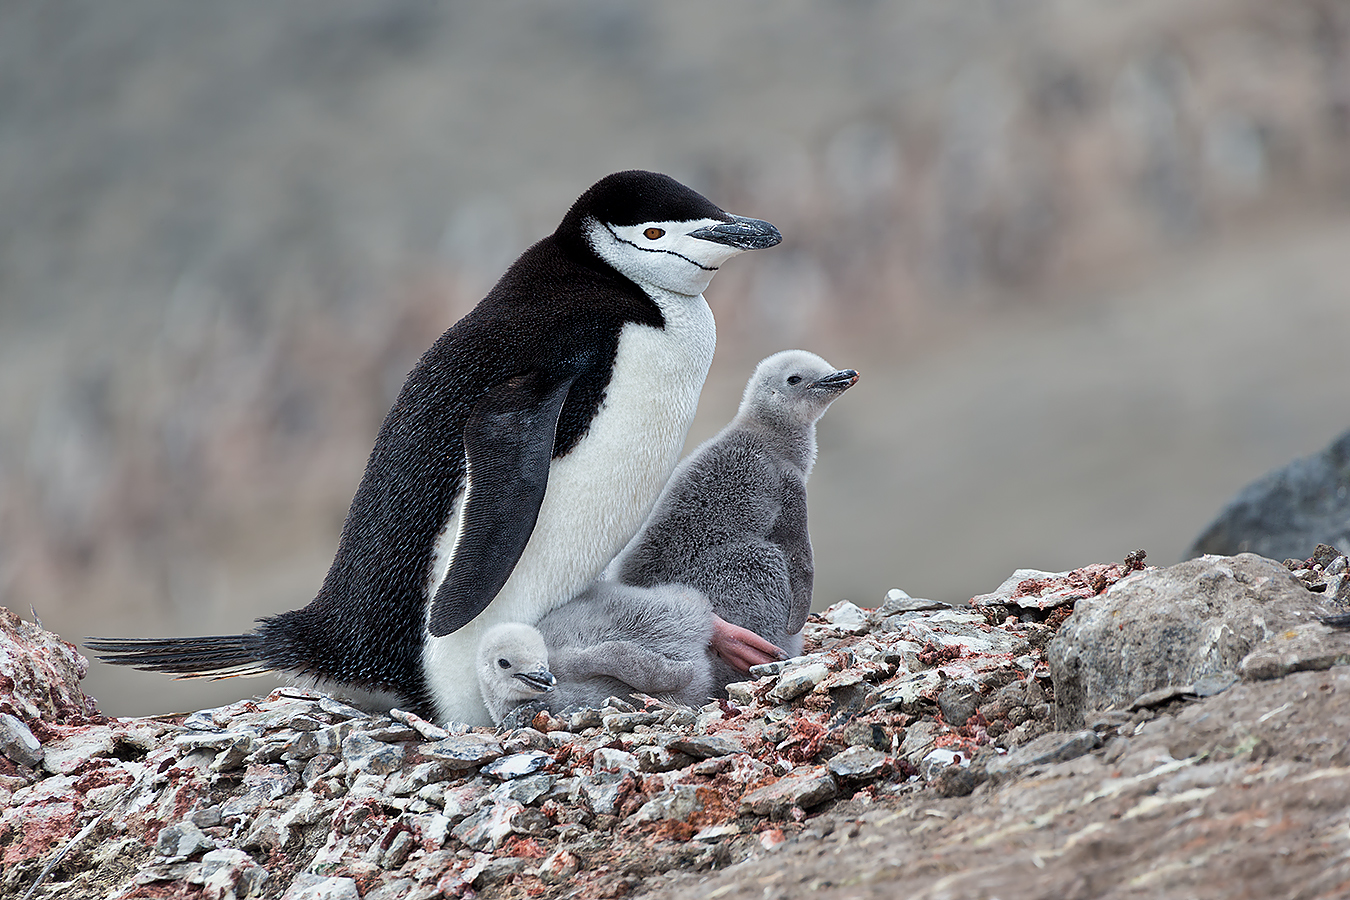 portrait_clemens-vanderwerf-chinstrap-penguin-with-two-chicks-on-nest_e7t4331-bailey-head-deception-island-antarctica